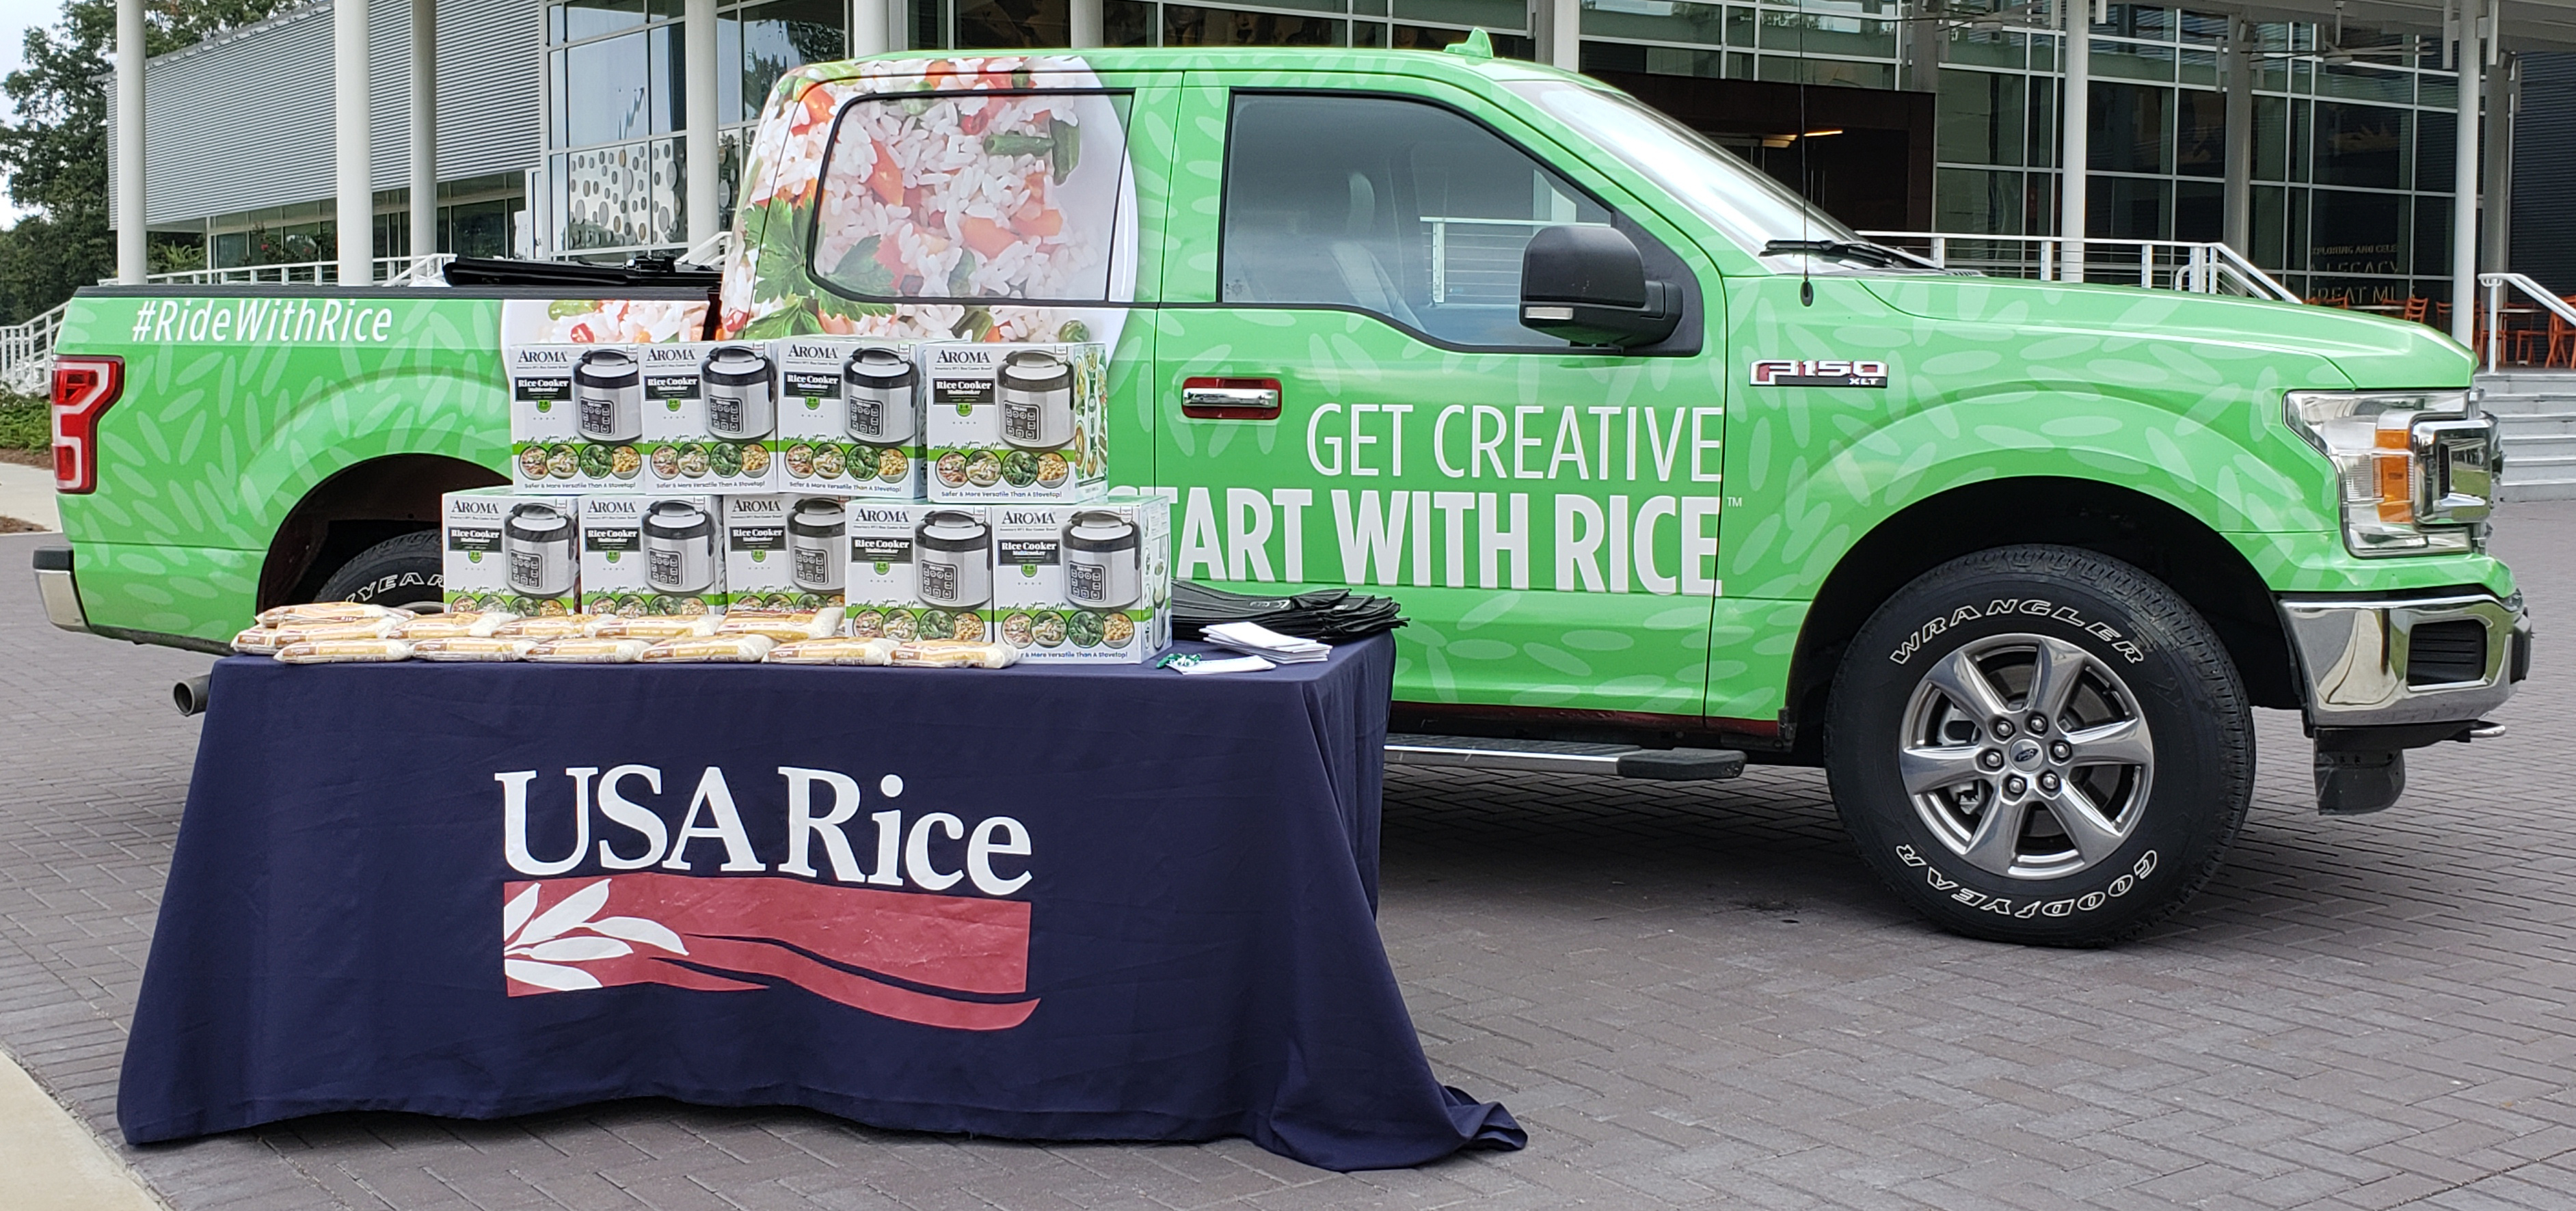 "Green pickup truck with designs & words ""Get Creative, Start With Rice,"" sits behind table with USA Rice banner and stacks of boxes on top"